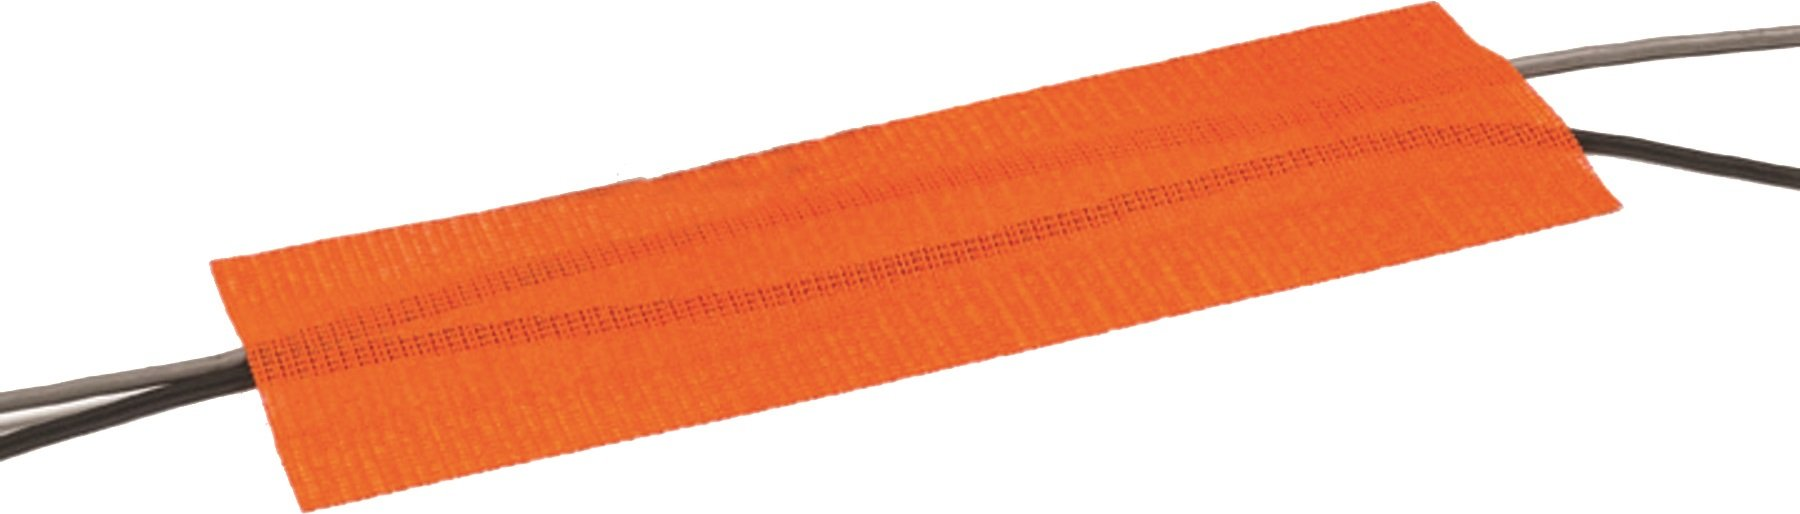 Trip-No-More Cord Cover, Disposable, Orange (Pack of 75)